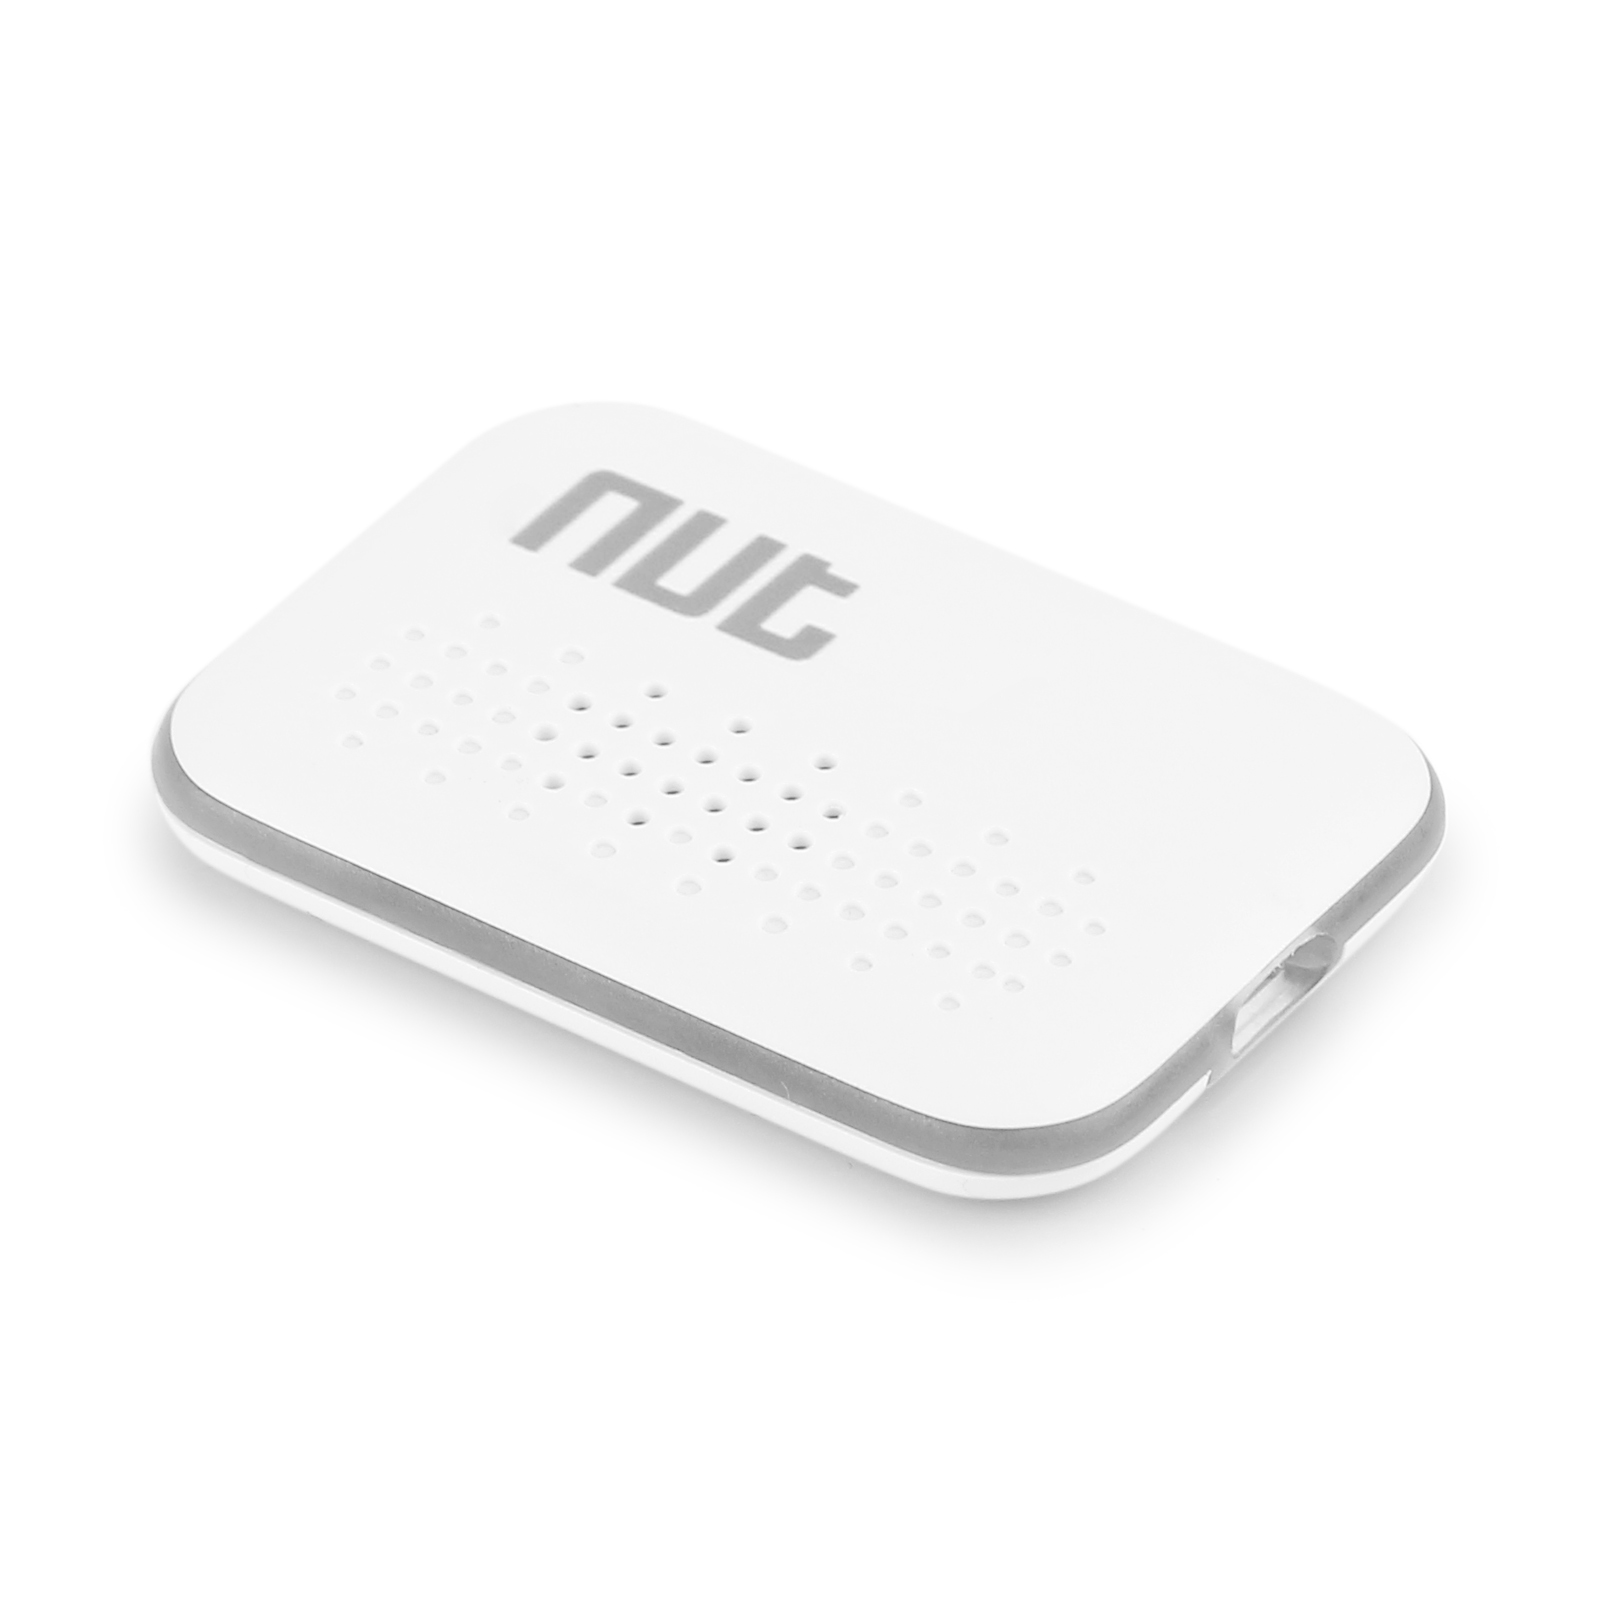 NUT Anti-Lost Smart Tracker with Bidirectional Alert and Bluetooth Connectivity